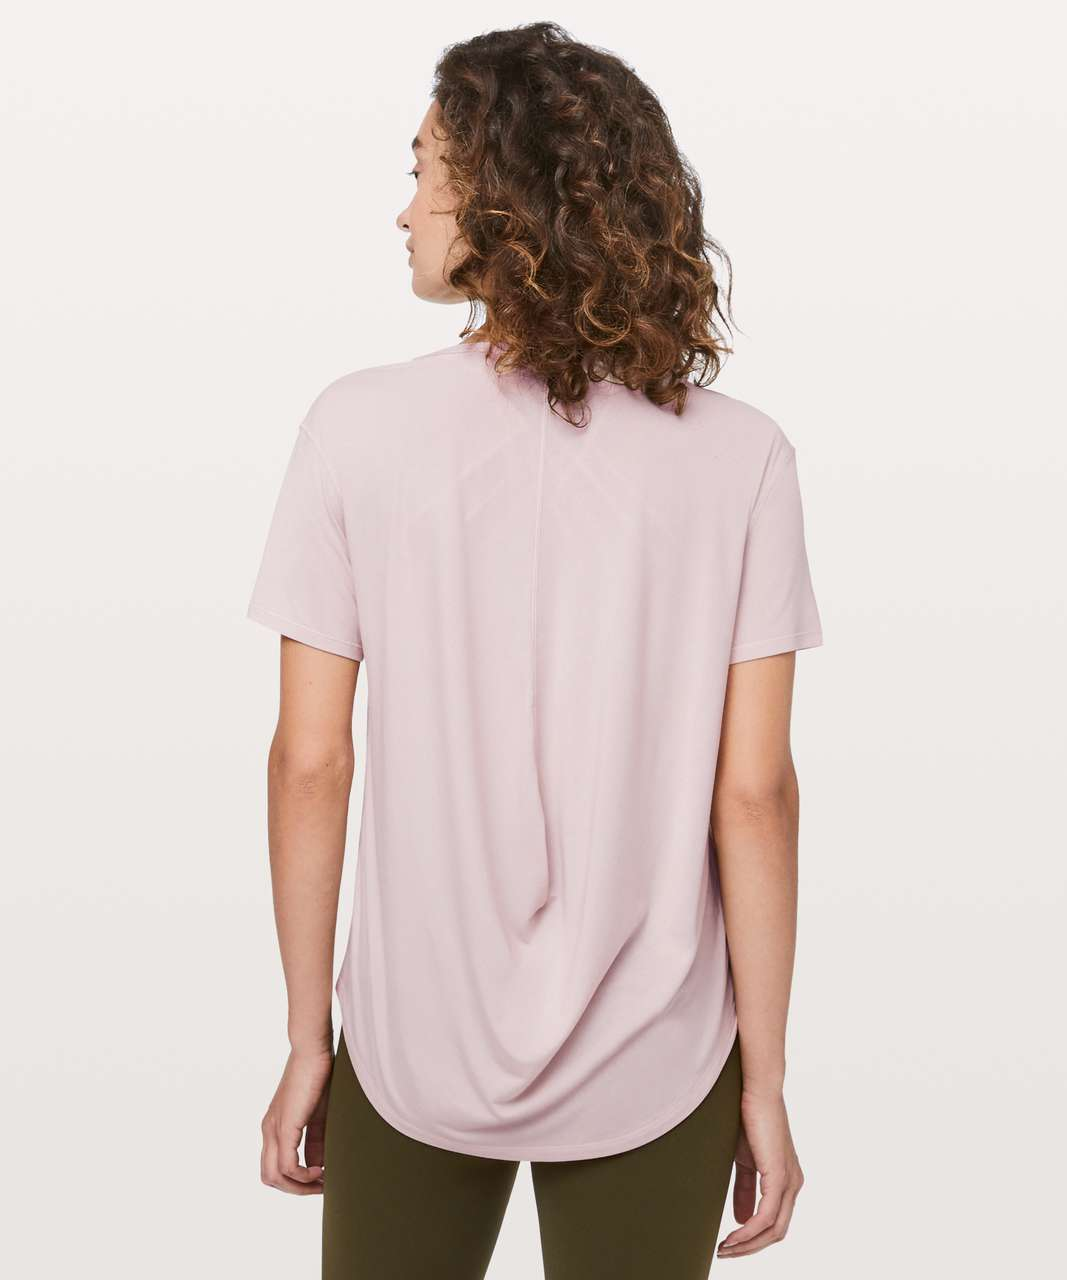 24a12c0ccb11b Lululemon Fall In Place Short Sleeve - Heathered Pink Bliss   White - lulu  fanatics